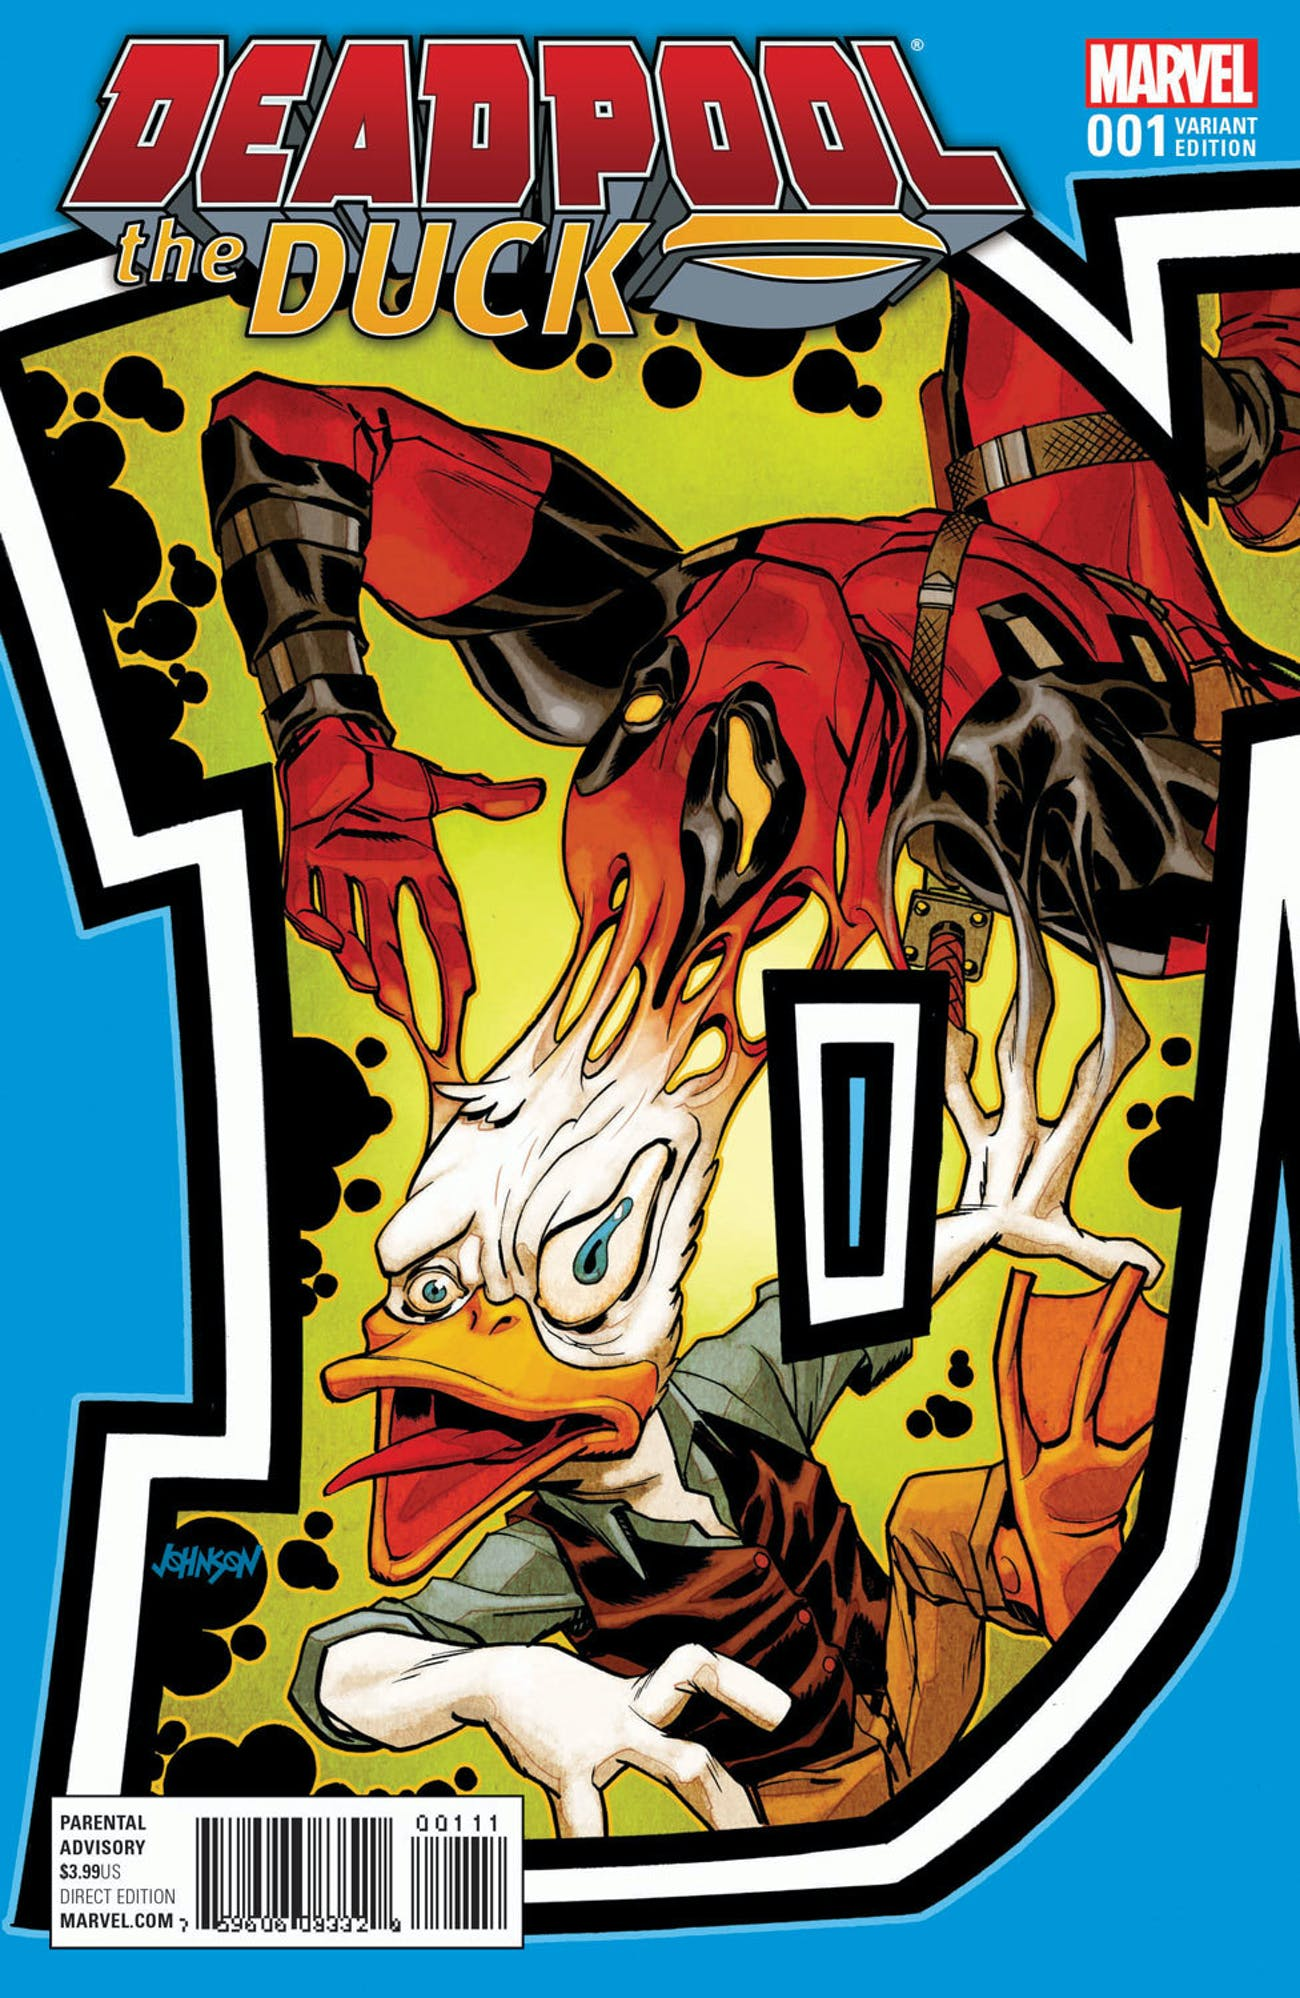 Variant cover for Deadpool the Duck from Marvel Comics